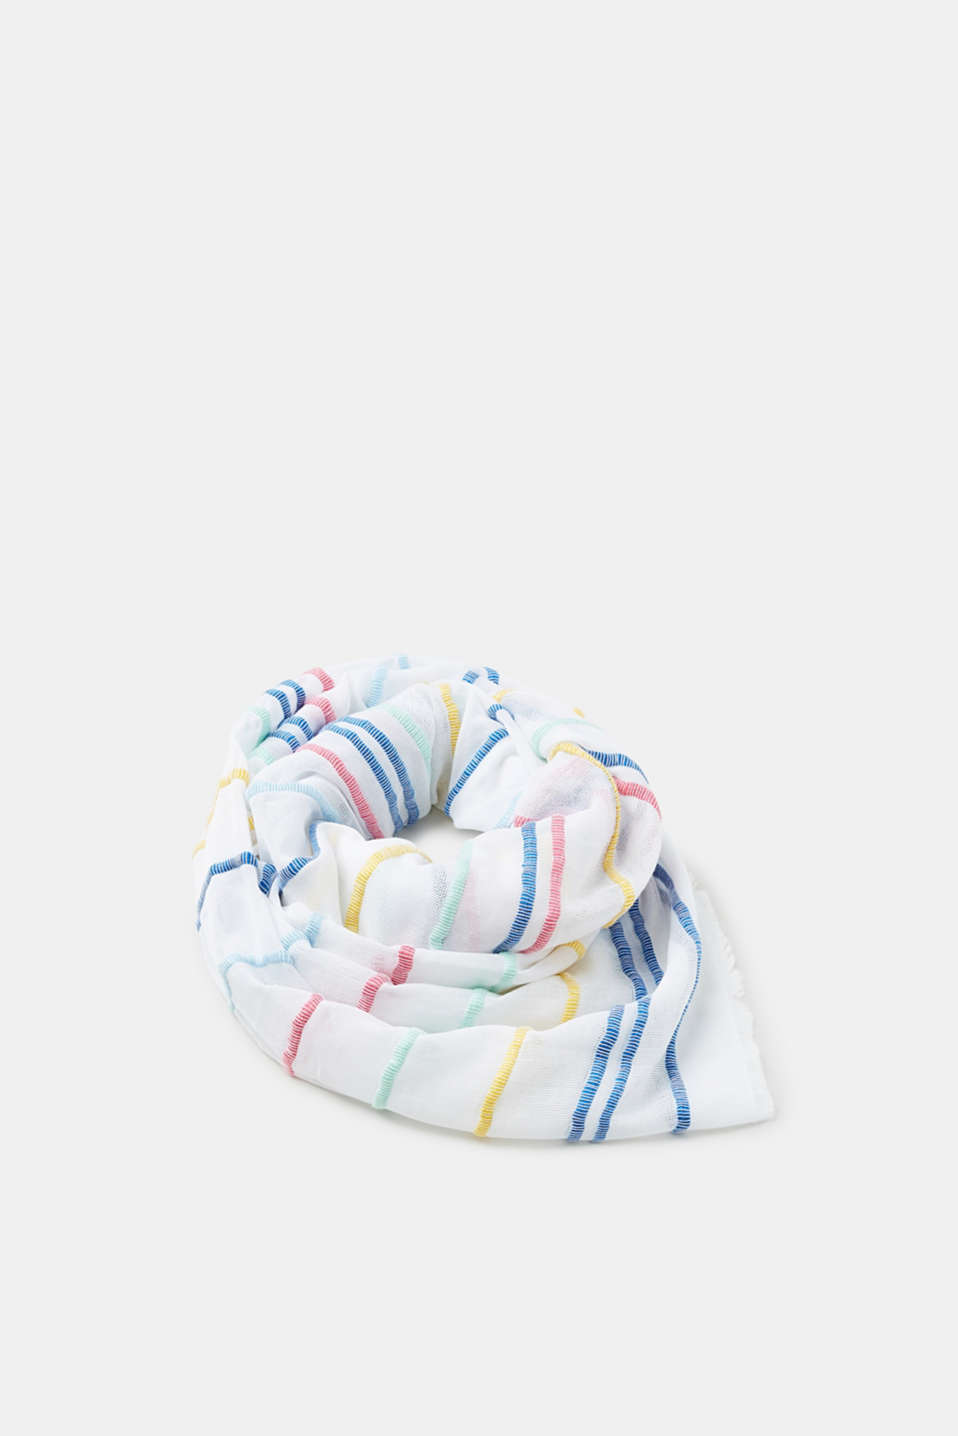 Esprit - Woven scarf with a mix of textures and bright stripes